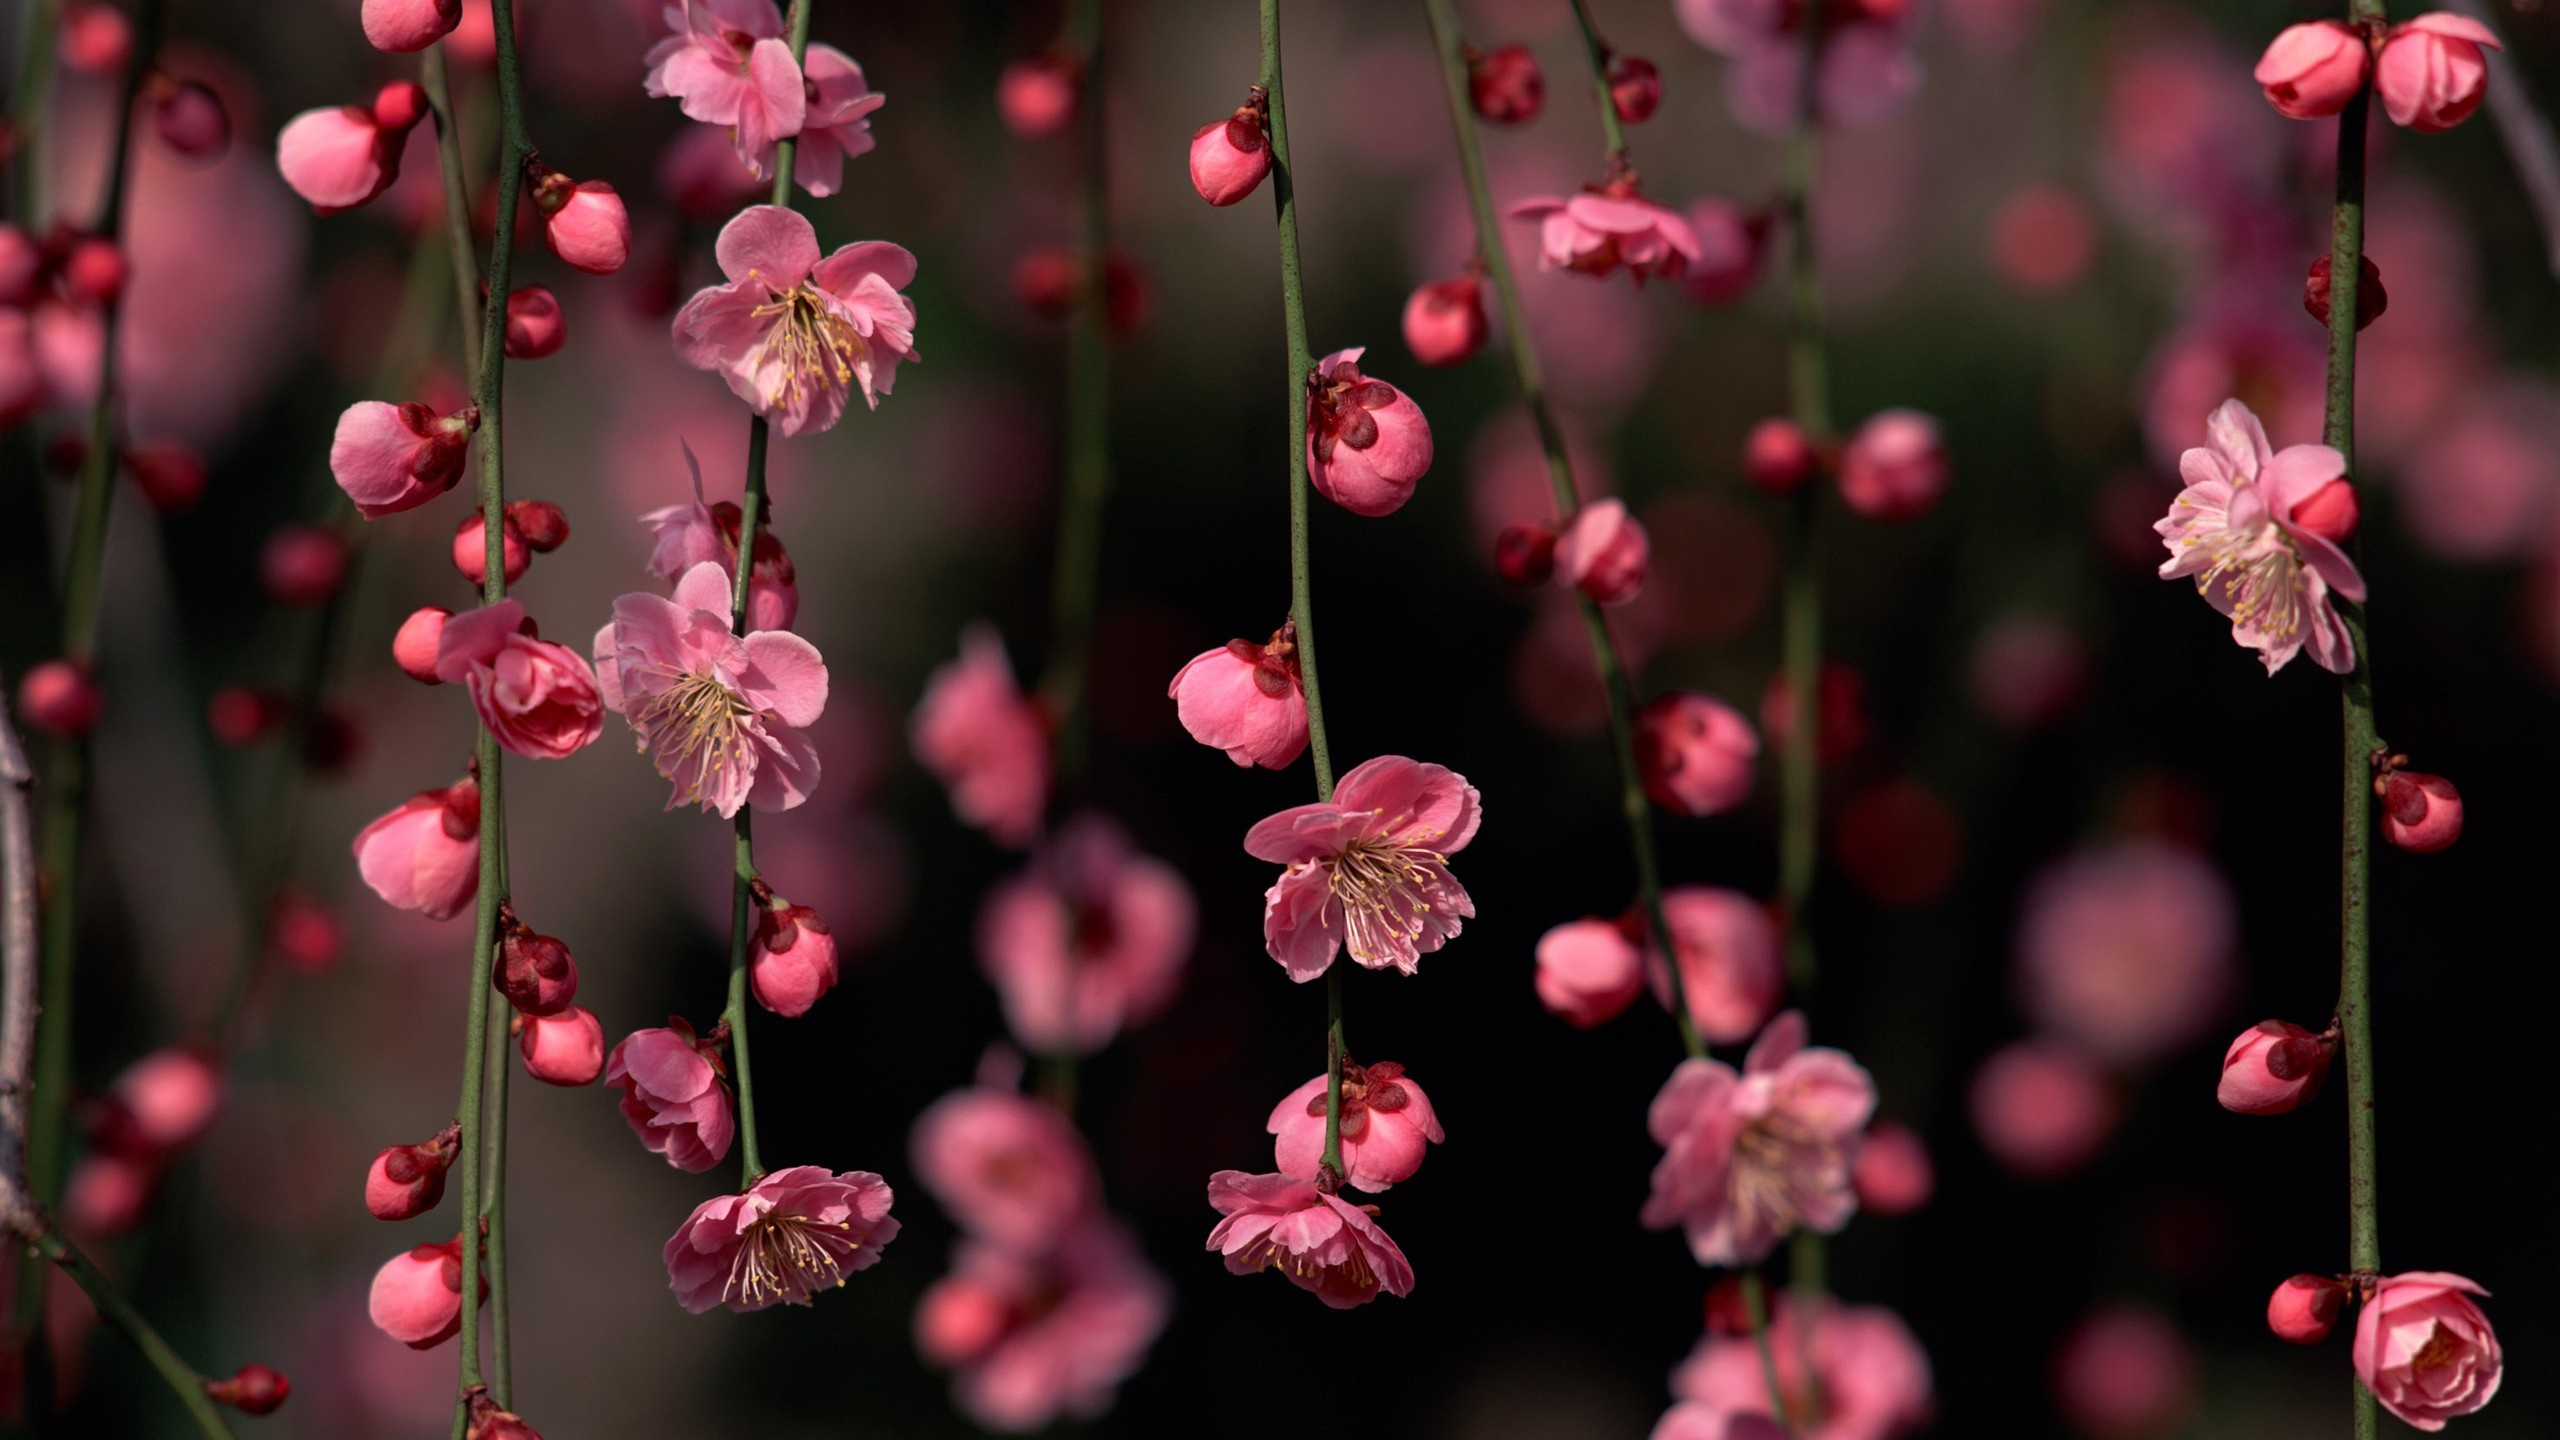 Love Wallpaper In Fb : 2560x1440 Pink Spring Flowers desktop Pc and Mac wallpaper